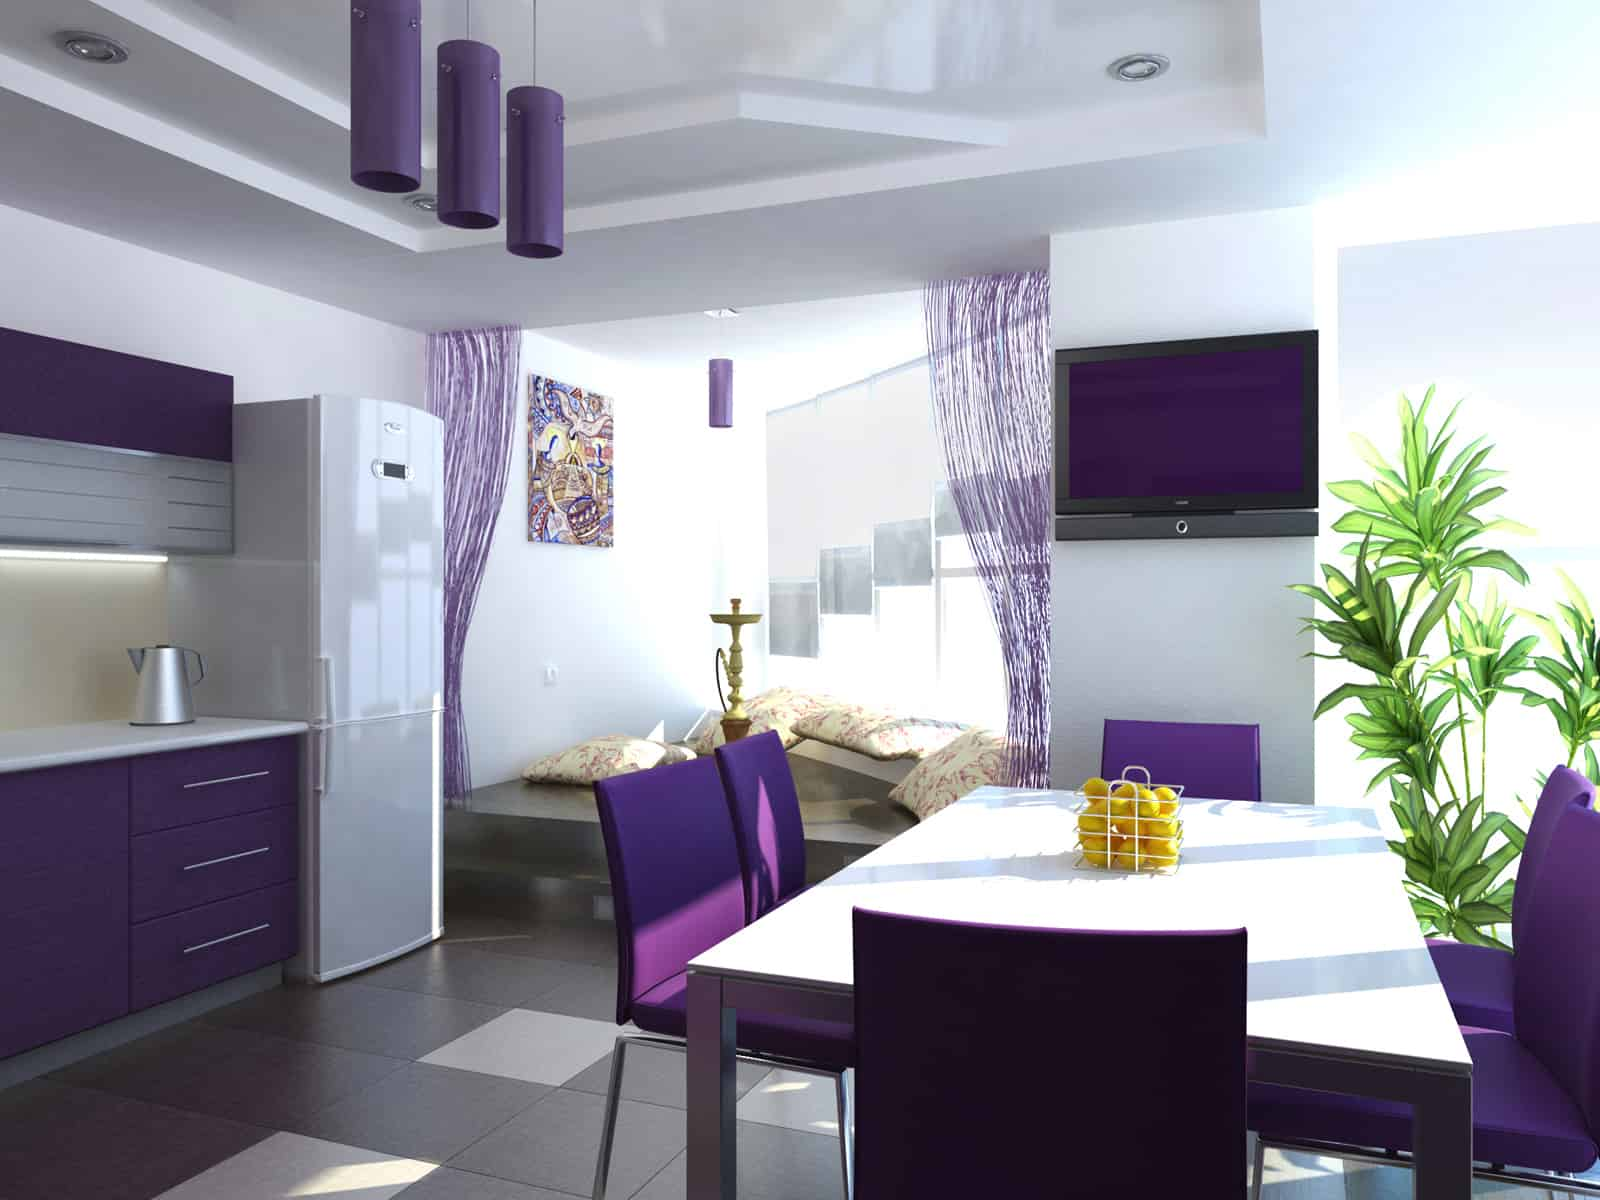 Interior design trends 2017 purple kitchen house interior for Interior design ideas for kitchens